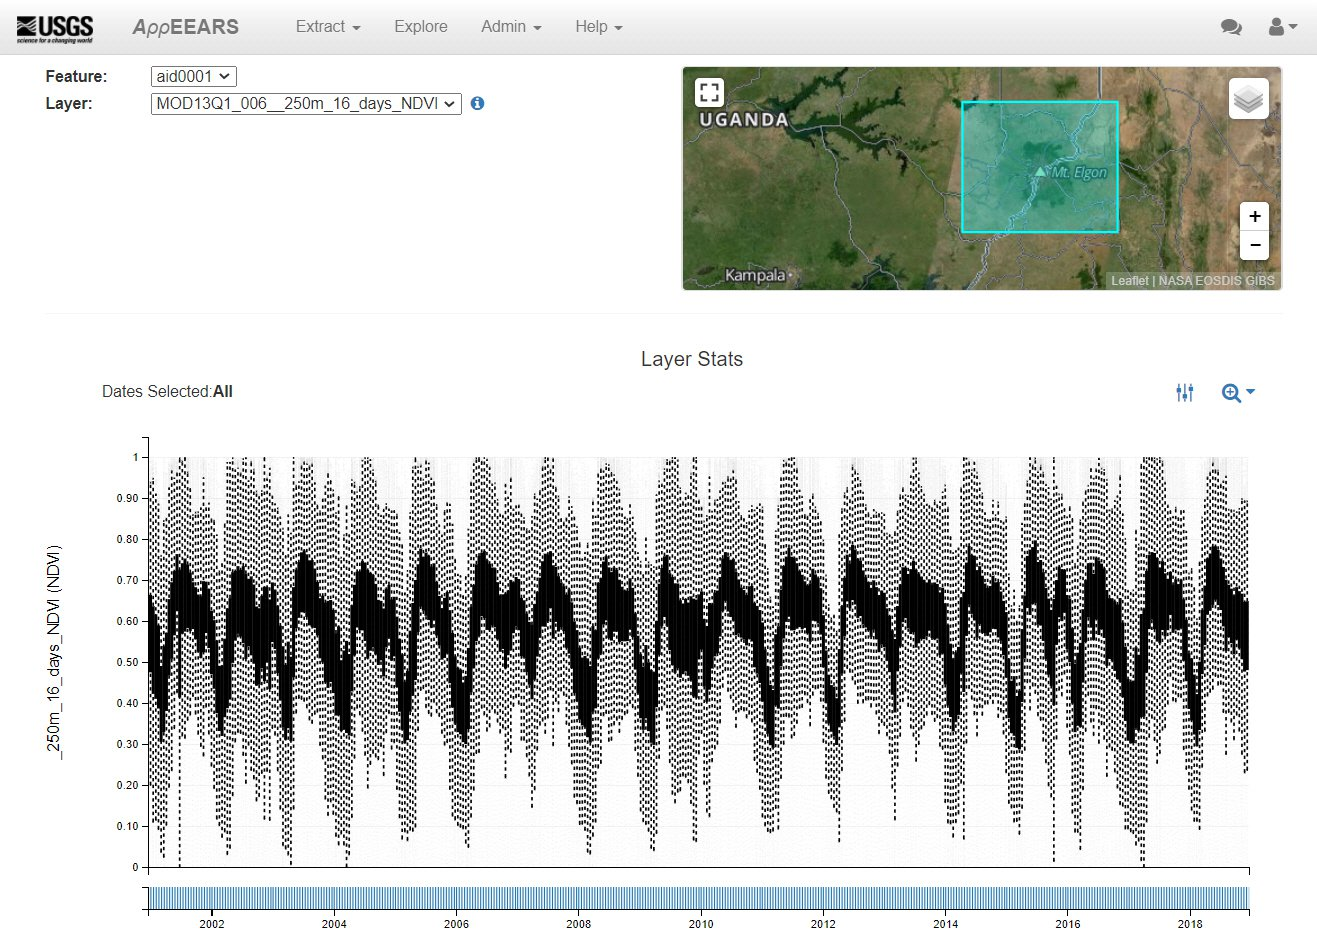 Screenshot of the AppEEARS View Area Sample page showing a map of the region of interest (Mt. Elgon) followed by a graph showing a time series of Terra MODIS NDVI from 2001–2018.